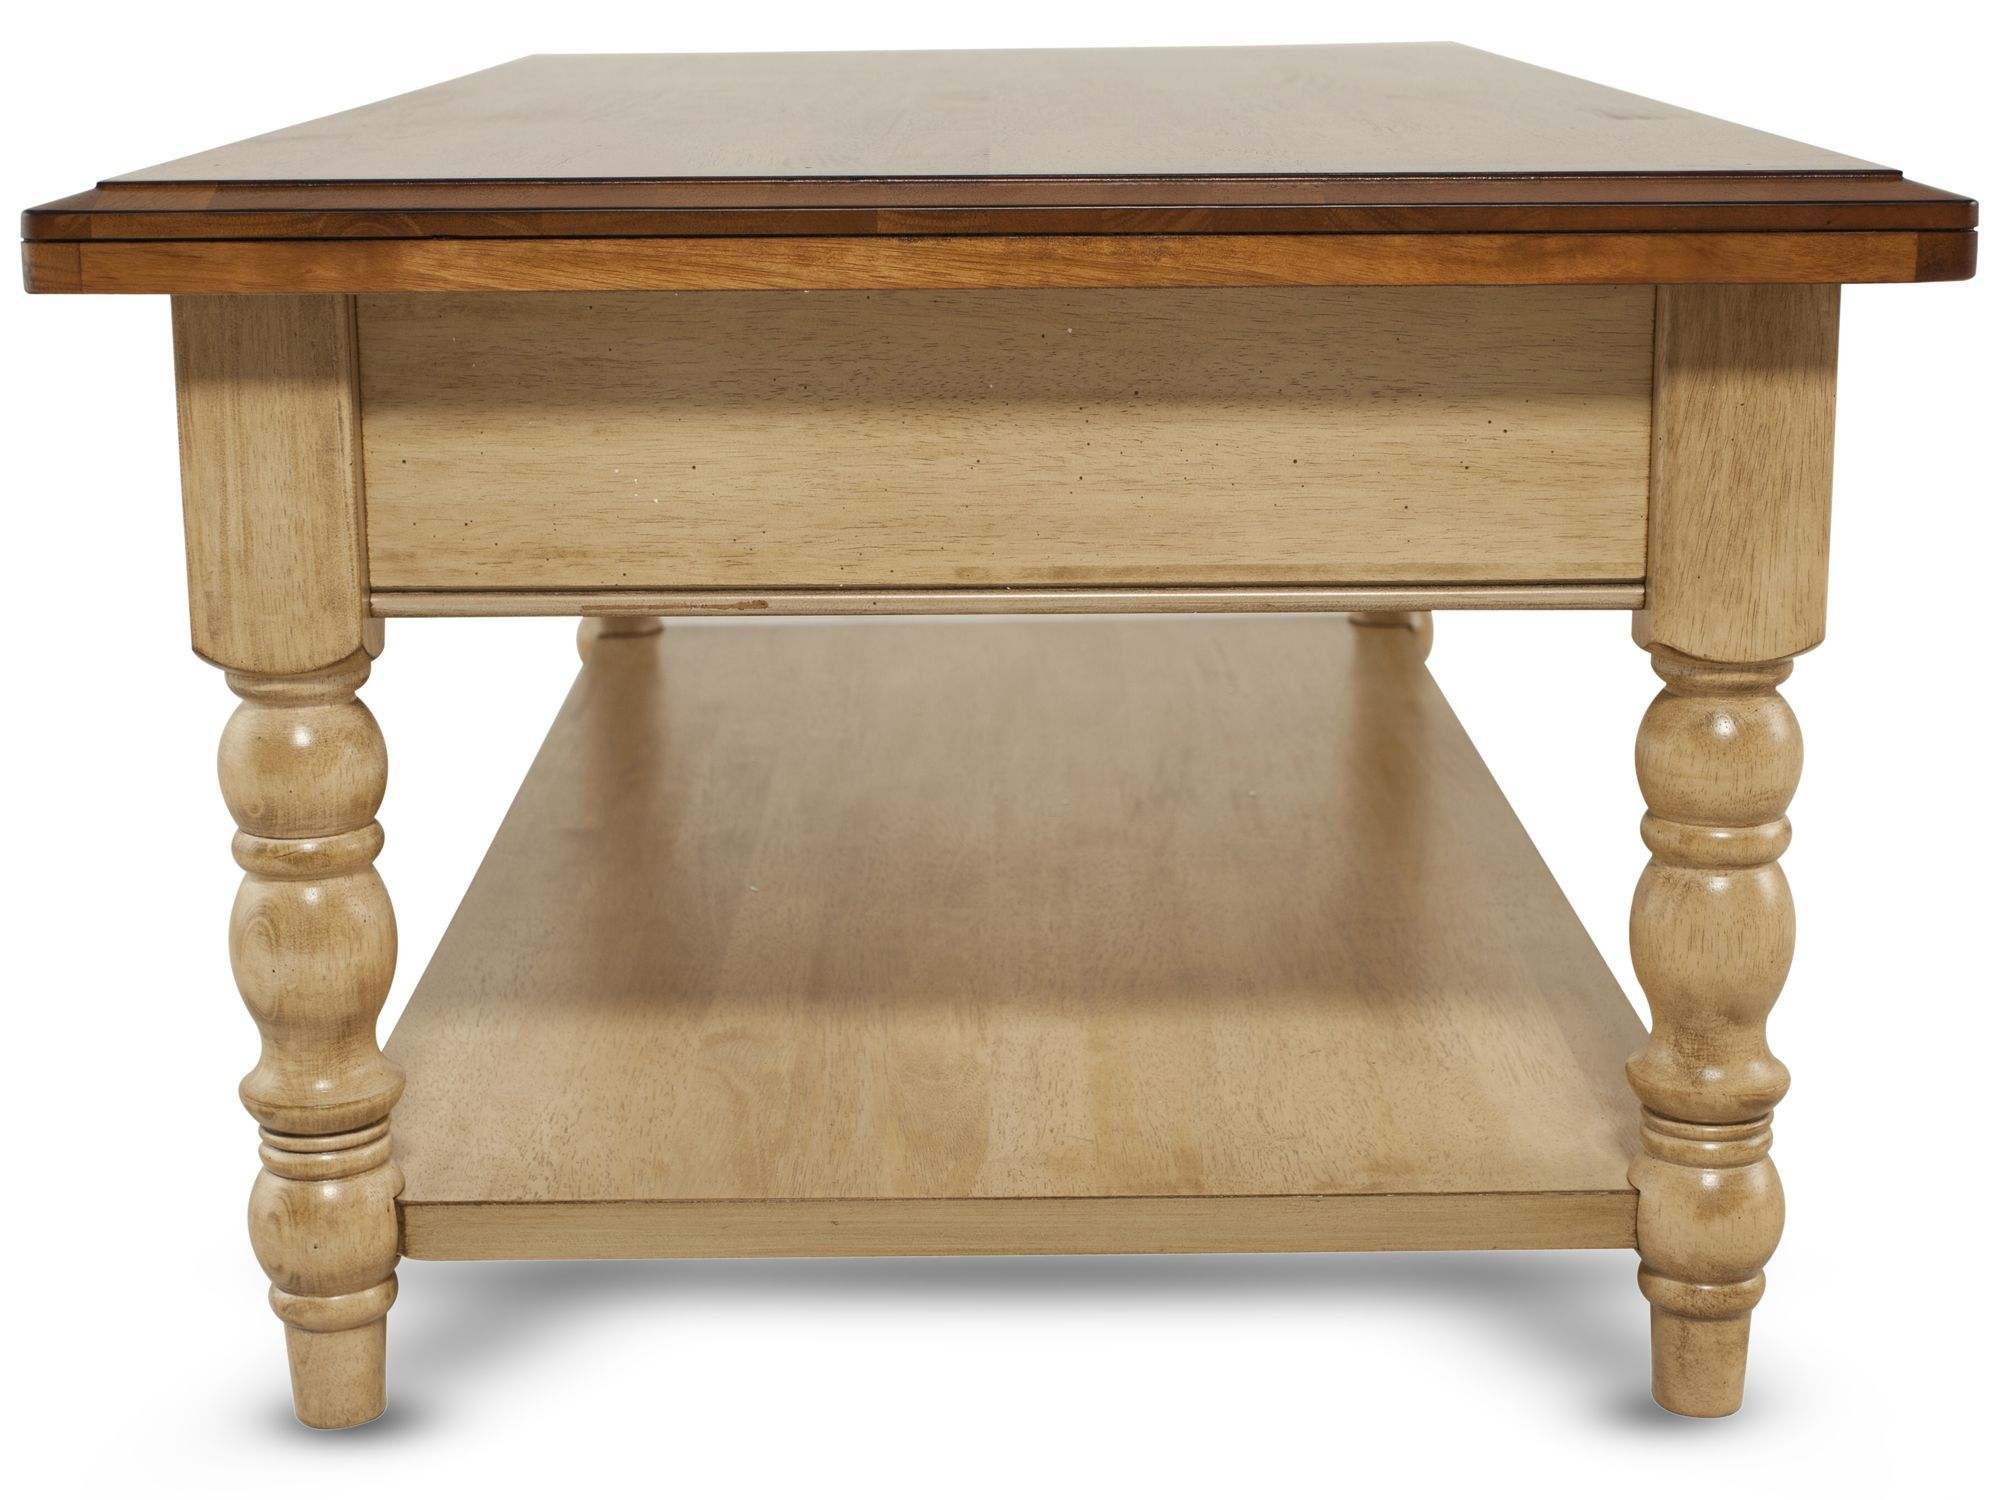 spindle leg solid wood coffee table brown mathis brothers furniture win accent tablenbsp round mats antiques roadshow dale tiffany lamp patio set with fire pit pier imports